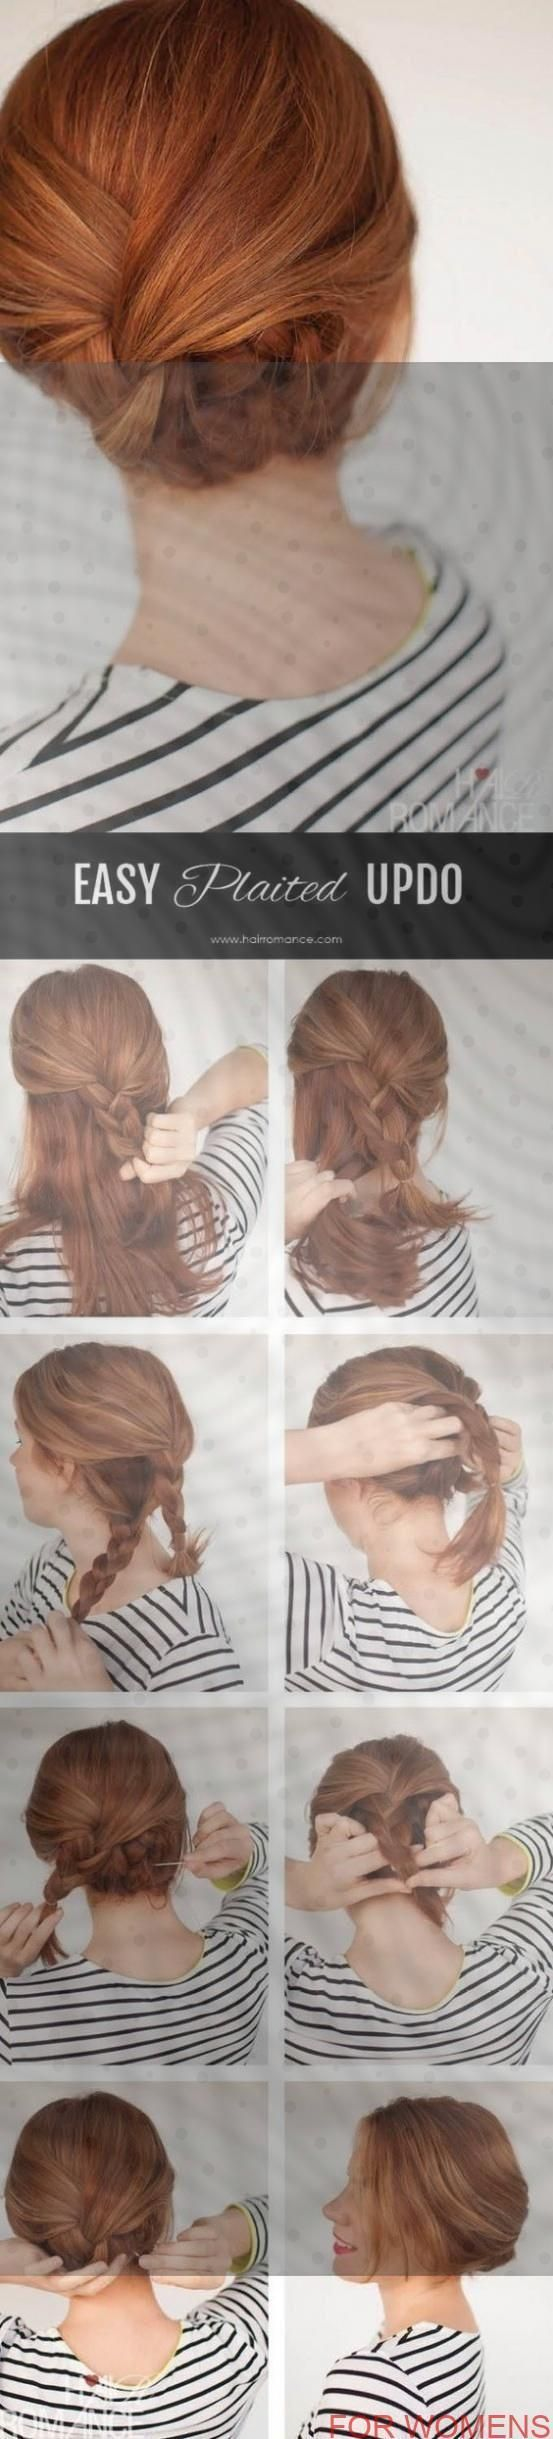 Express hairstyles for everyday life Simple and simple hairstyle - Hairstyles 2019 ... - New Site  #everyday #express #hairstyle #hairstyles